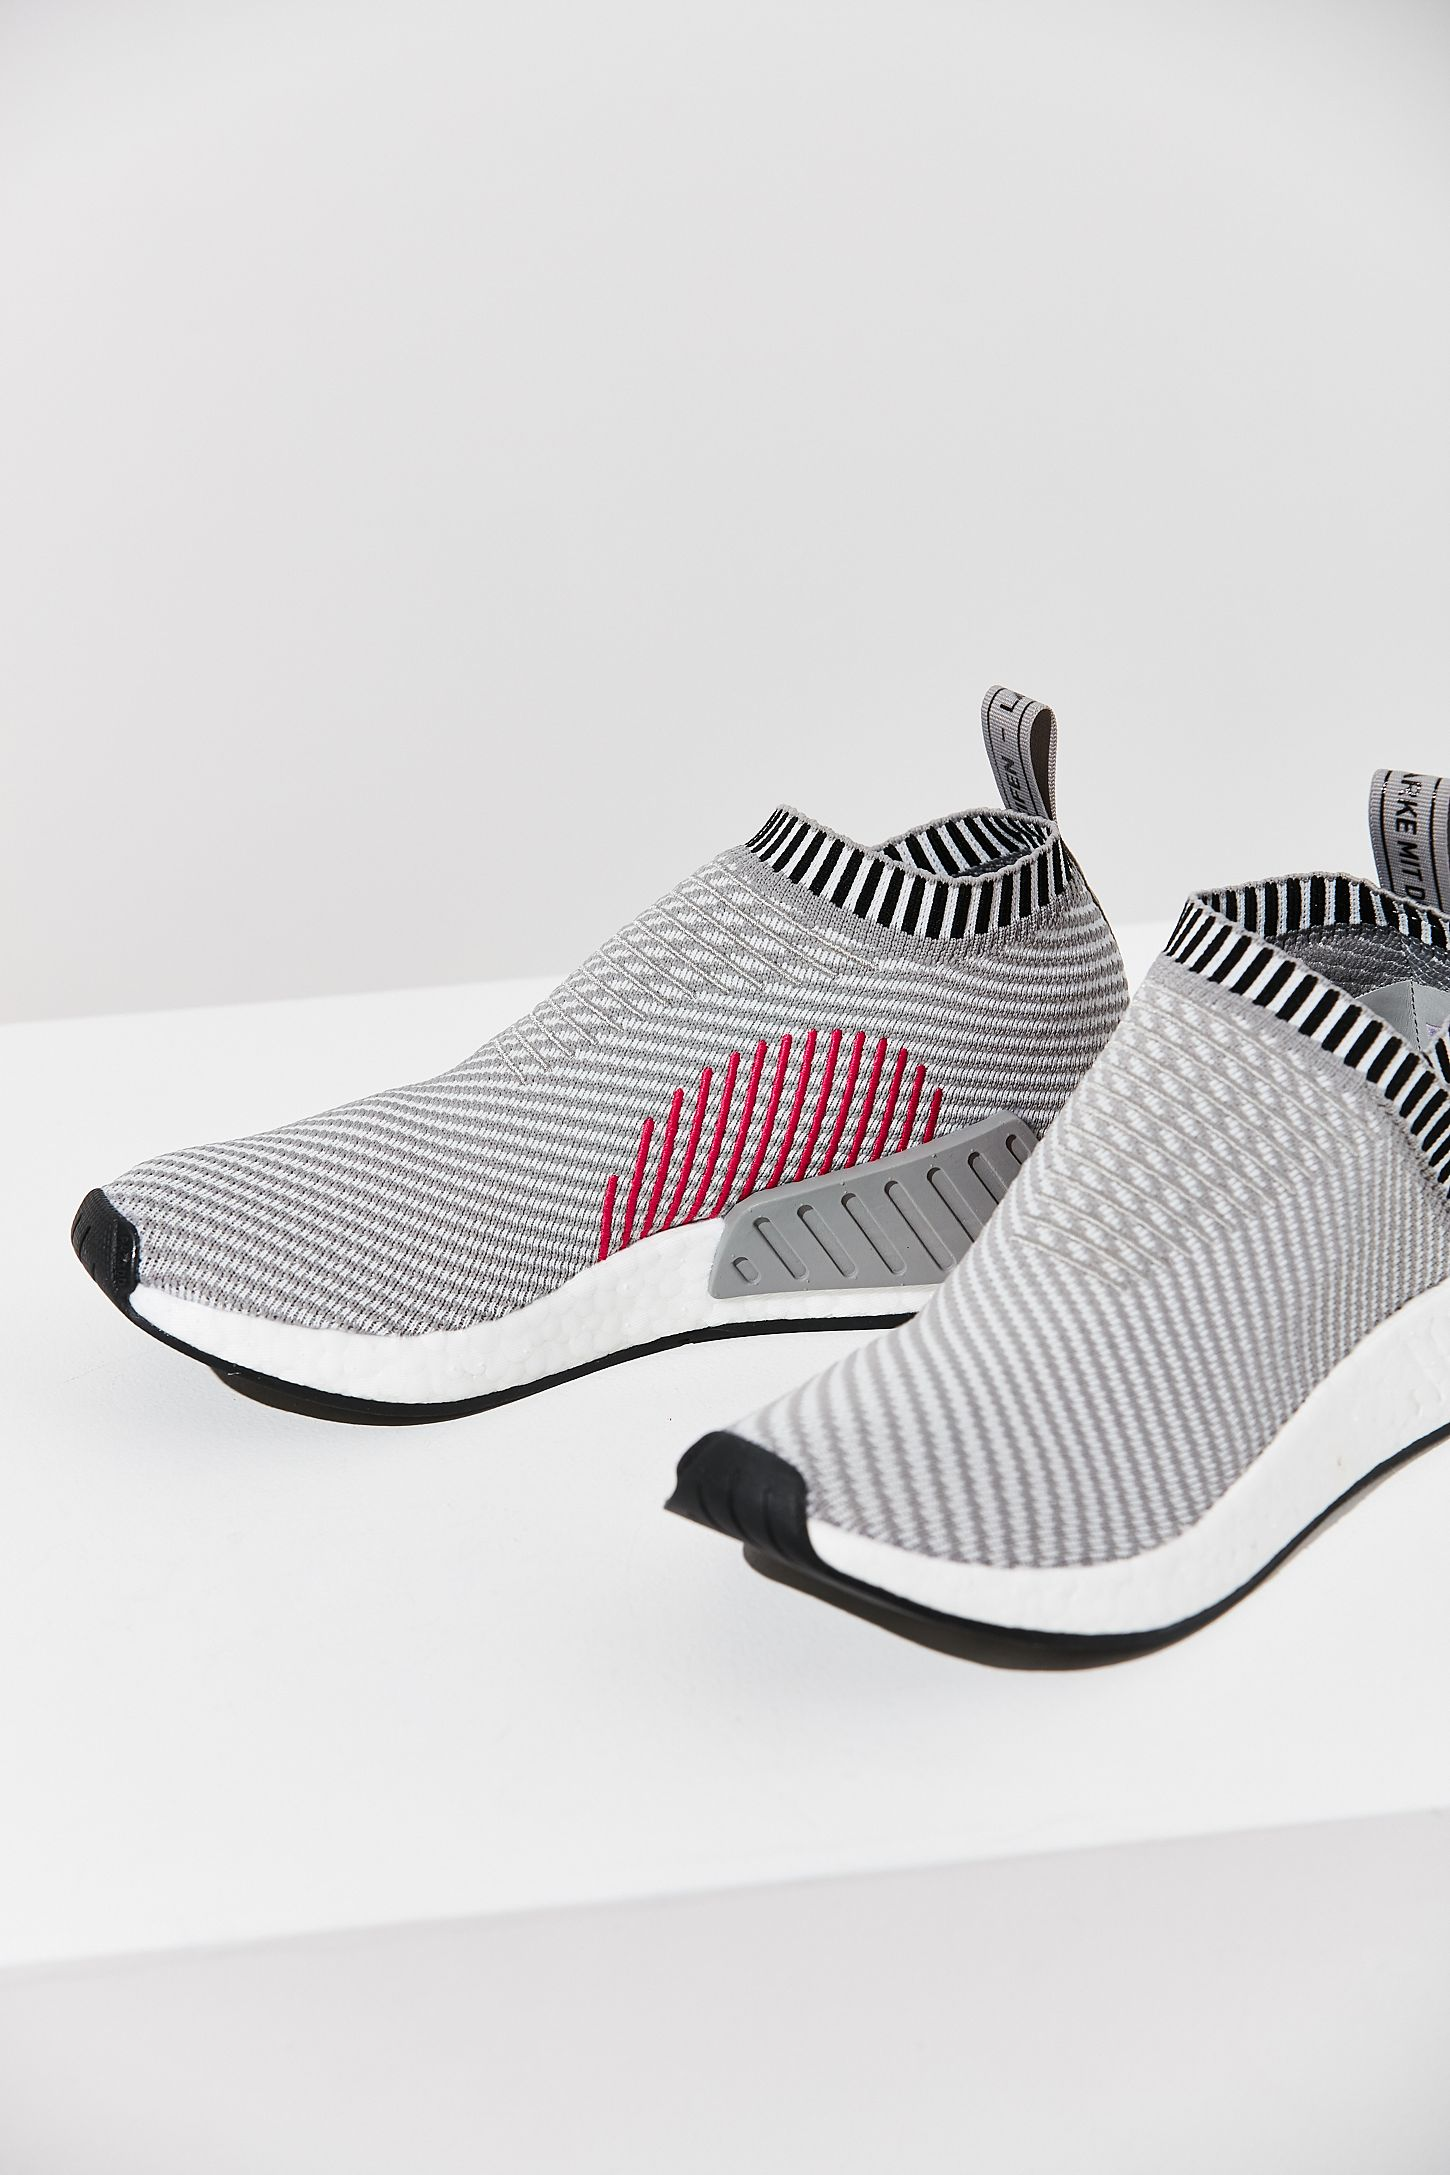 bb2583acab56f adidas Originals NMD CS2 Primeknit Sneaker. Tap image to zoom. Hover to  zoom. Double Tap to Zoom